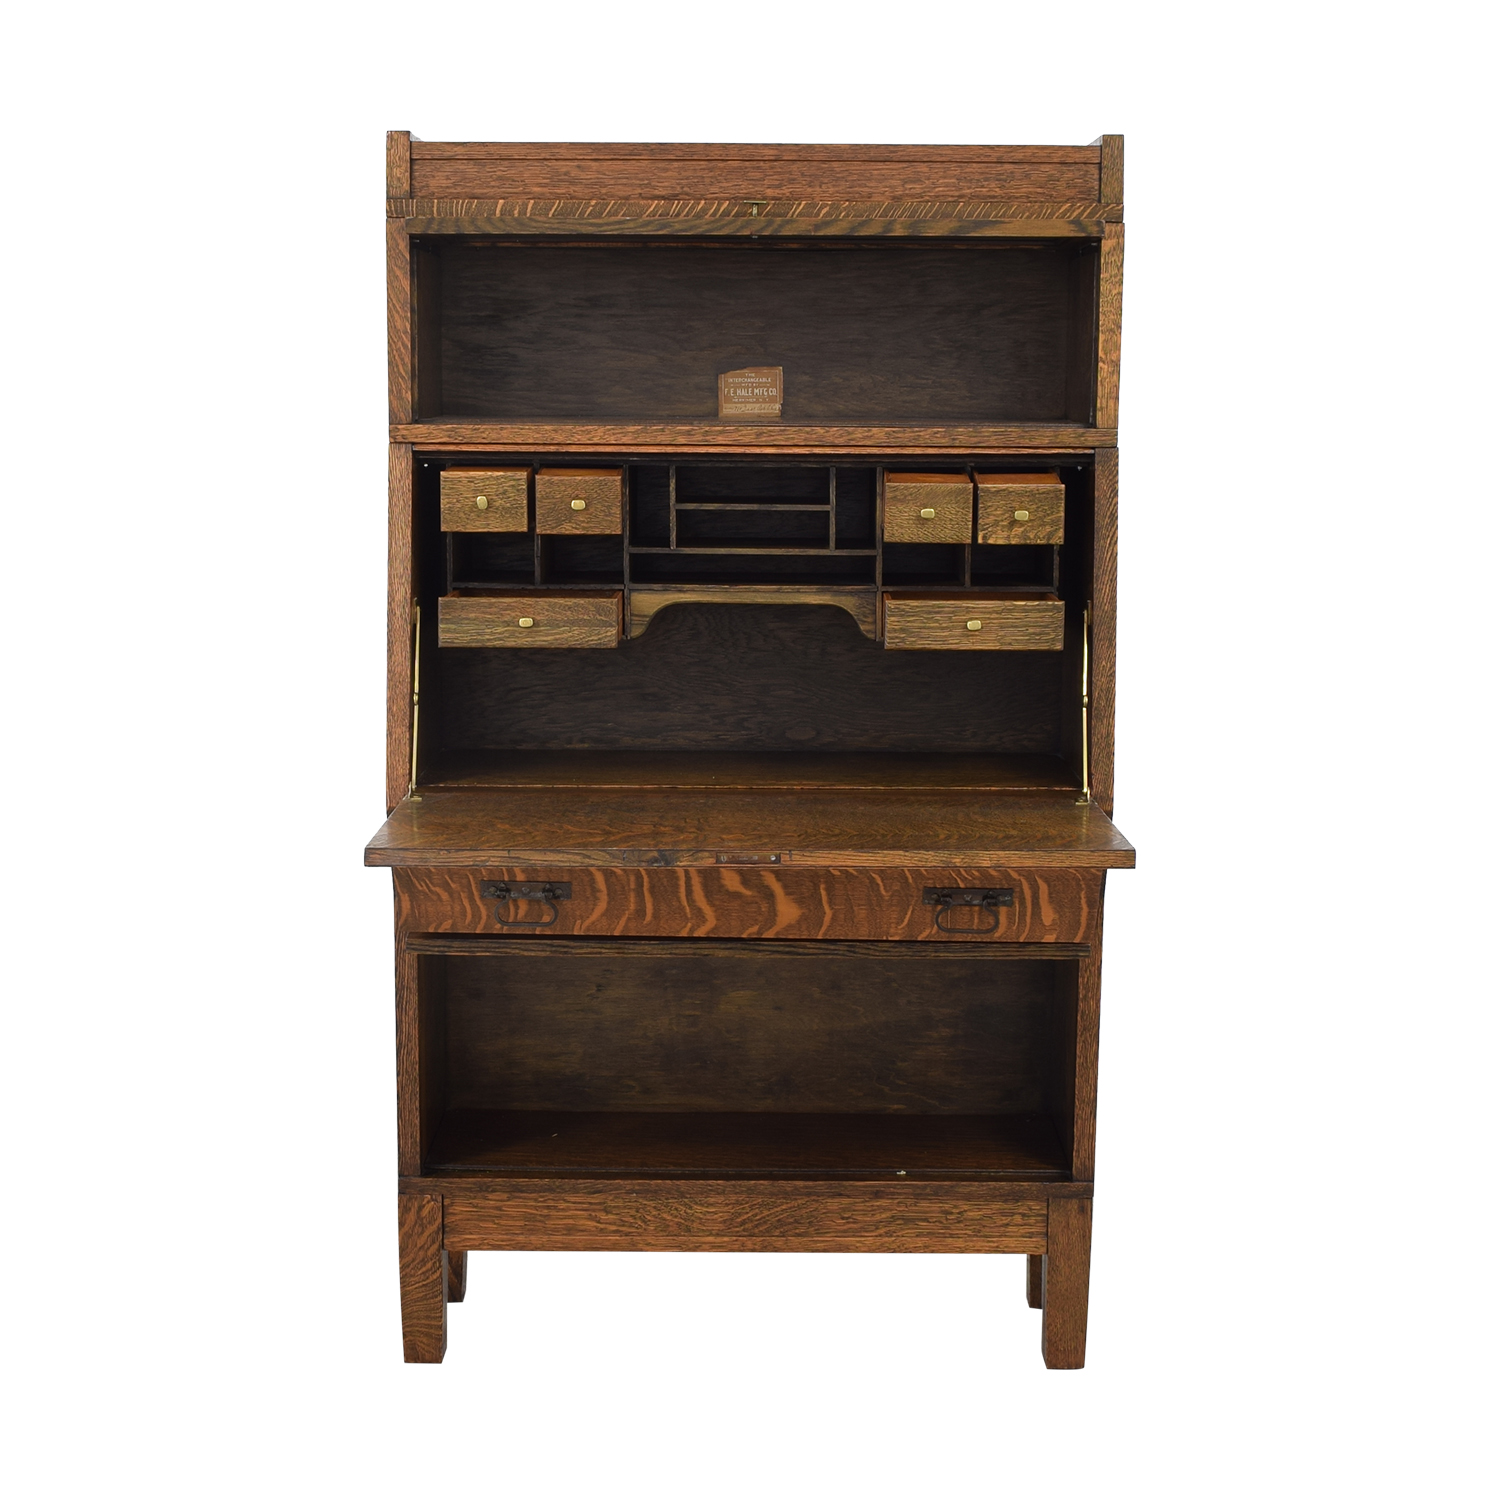 Hale Hale Manufacturing Early American Antique Secretary on sale